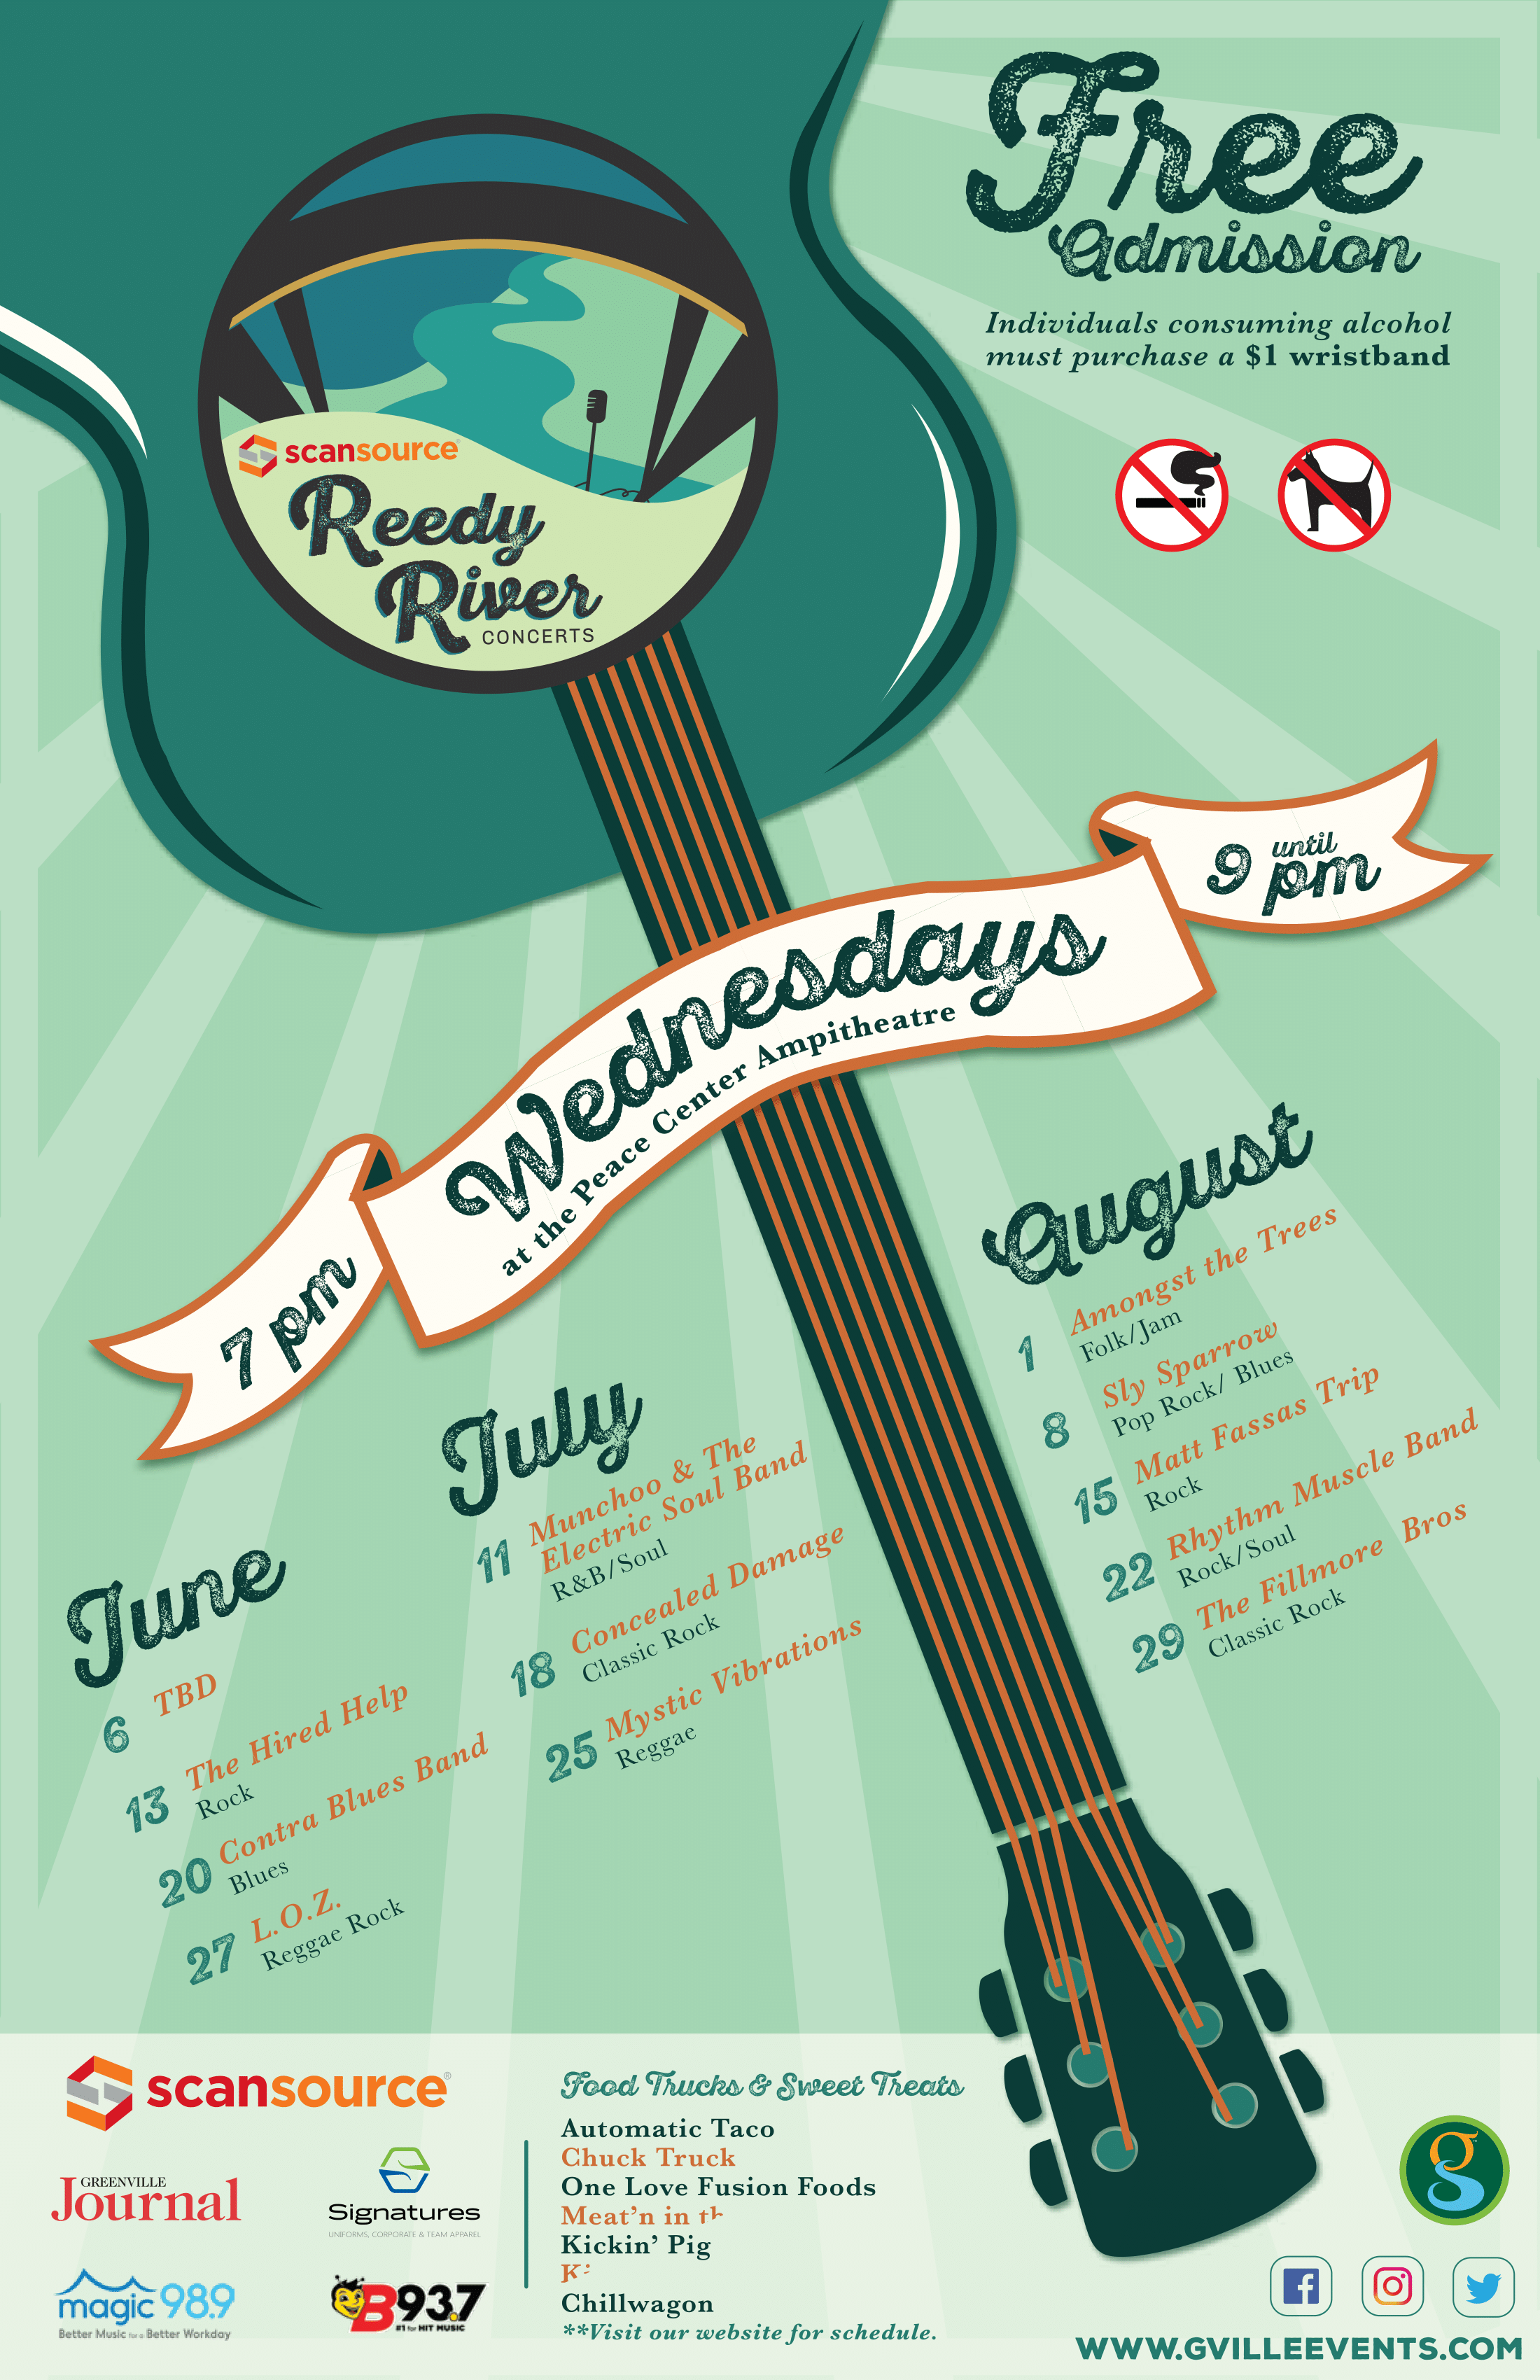 A schedule flyer for the 2018 Reedy River Concert Series.